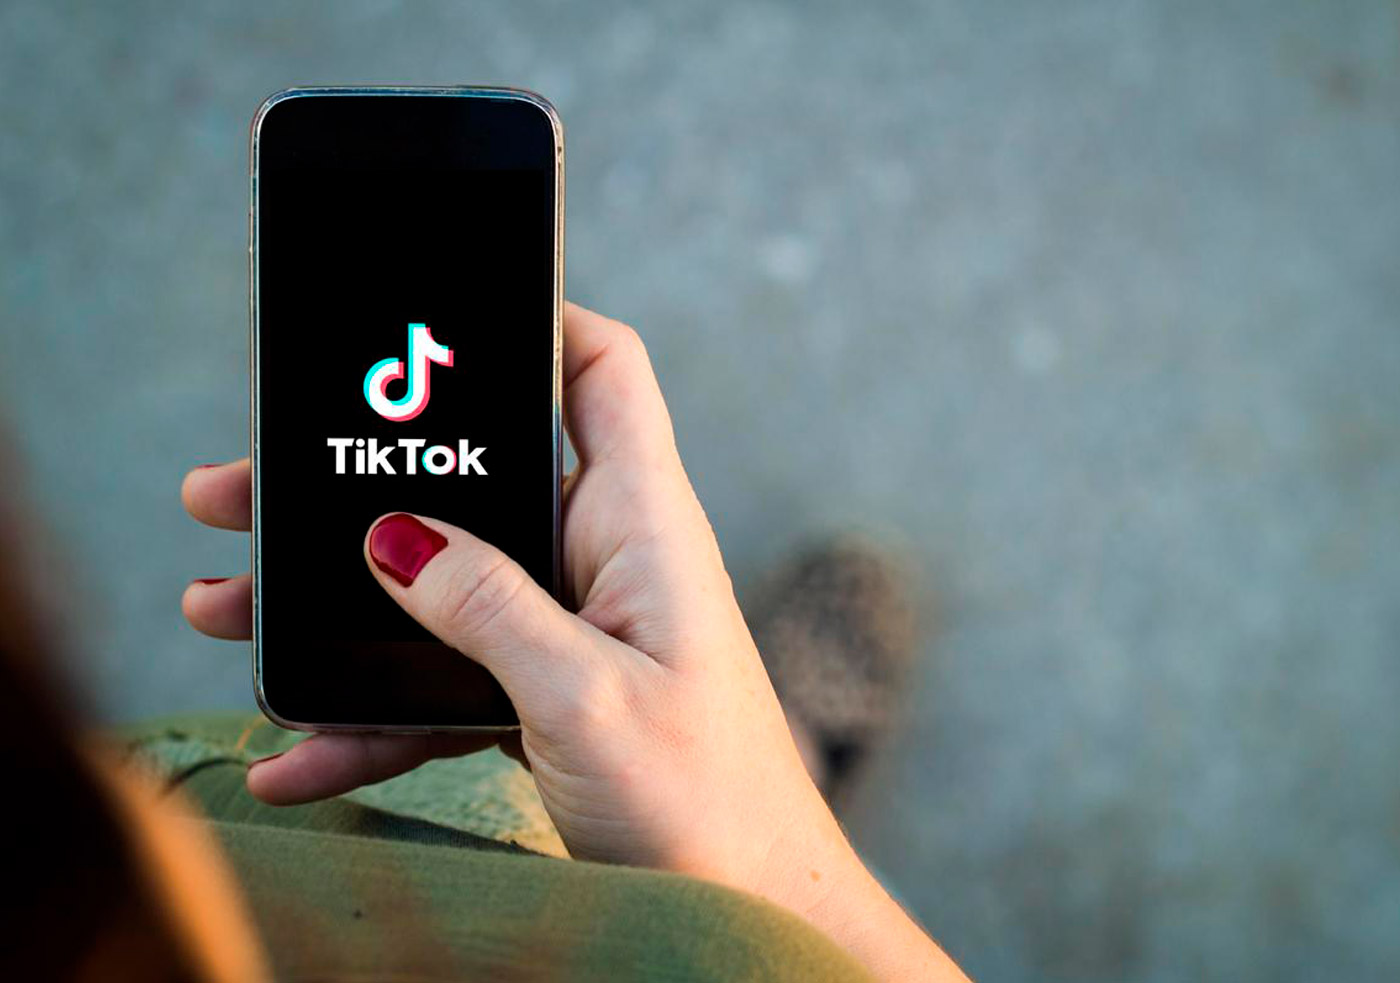 imagen de tiktok marketing digital